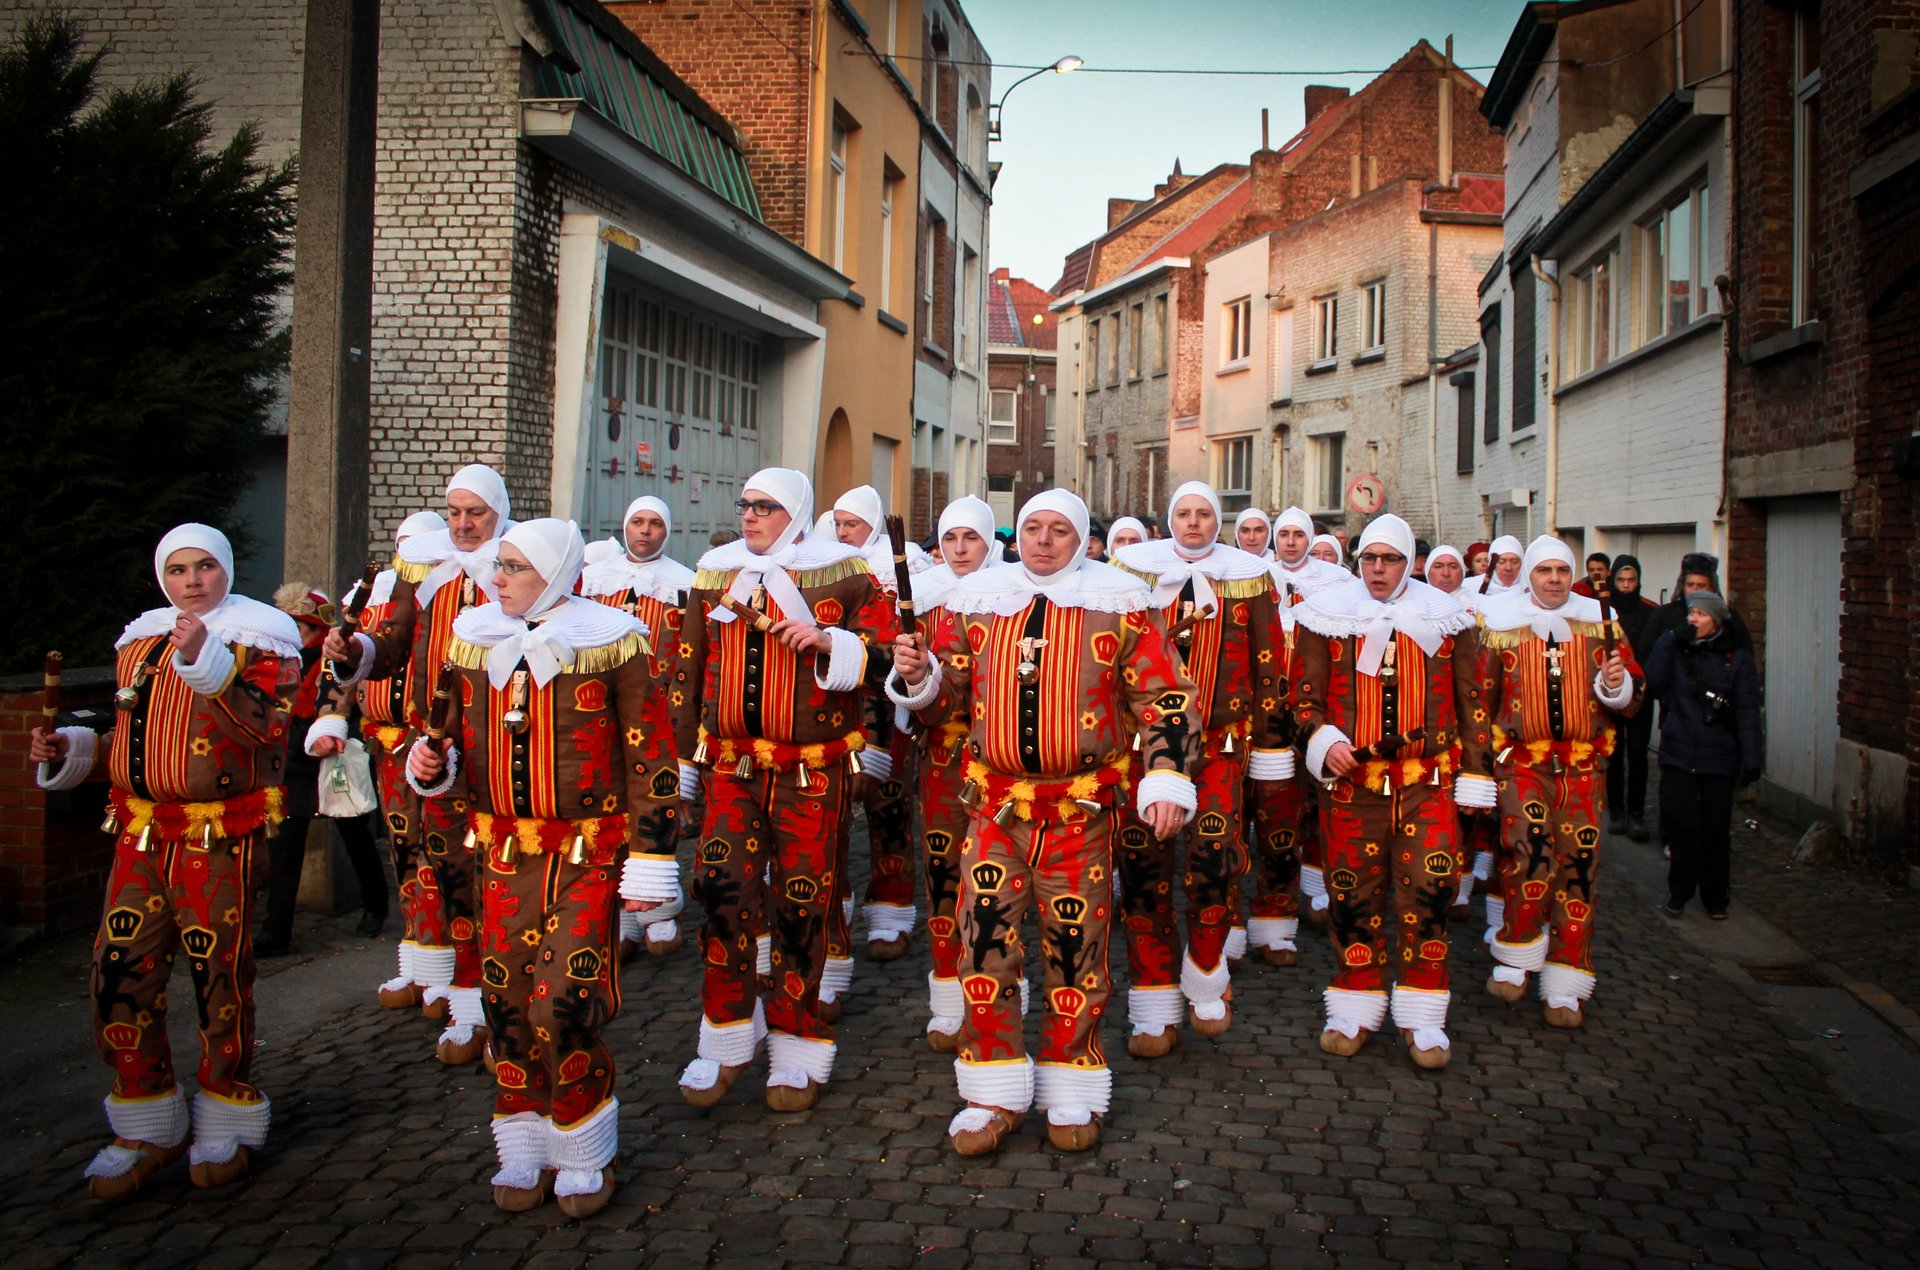 Carnaval de Binche in Belgium - Best Season 2020